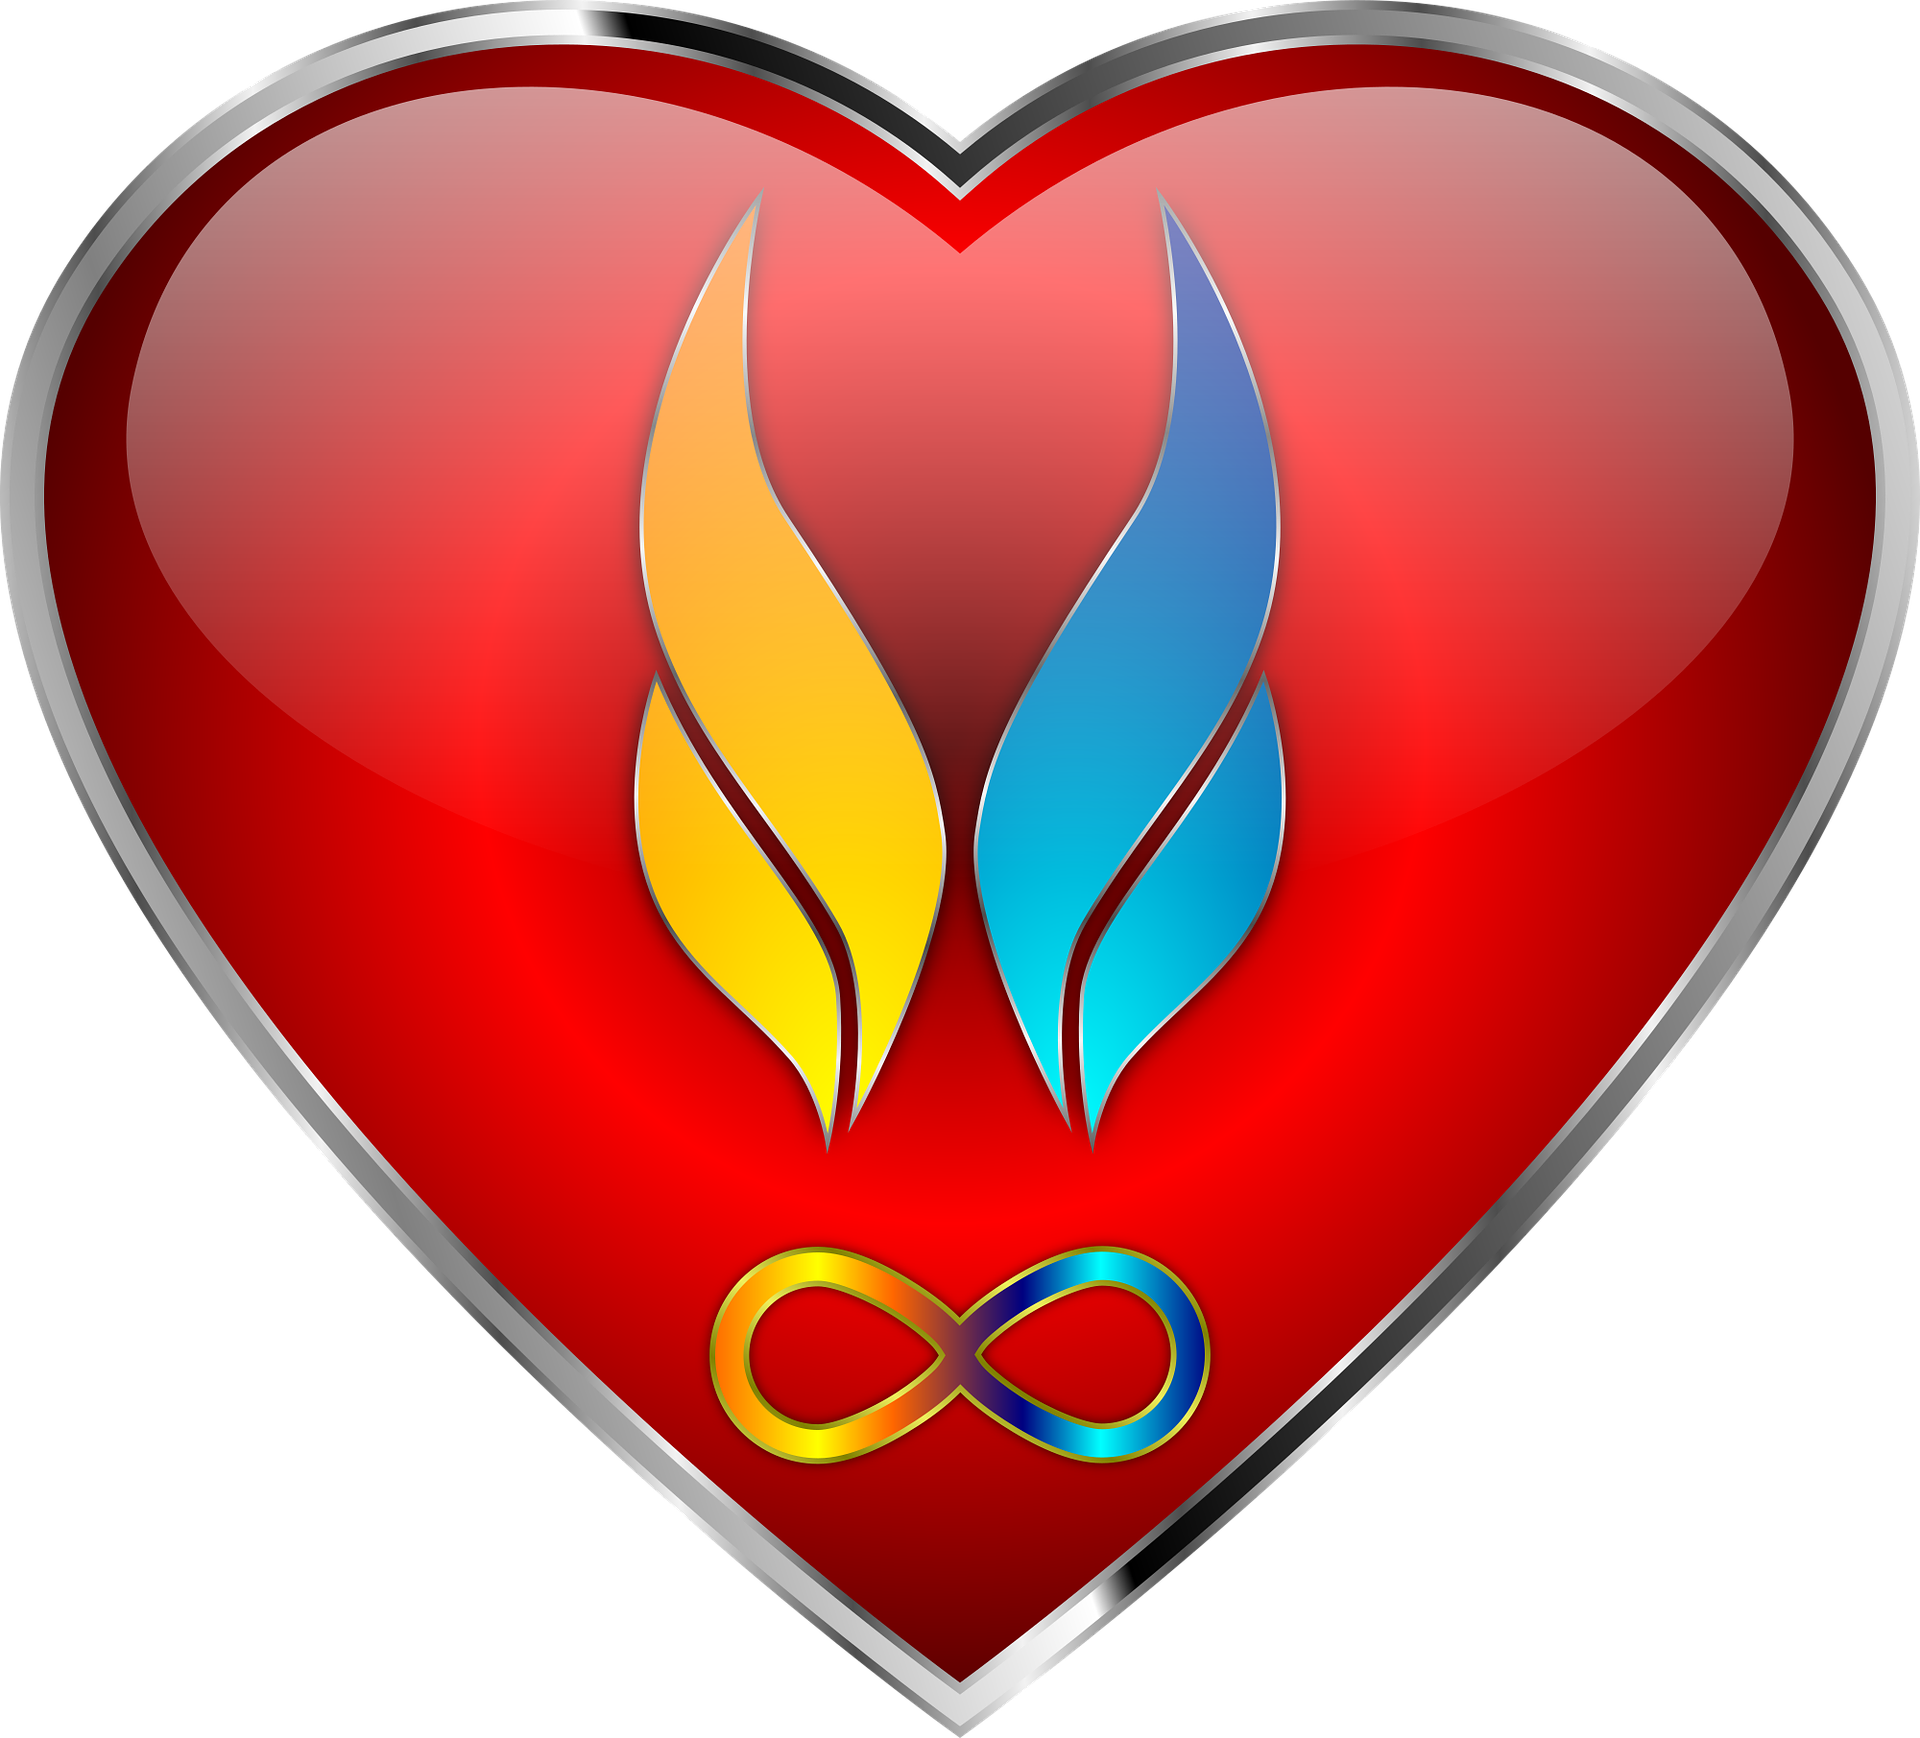 twin-flames-2548406_1920.png